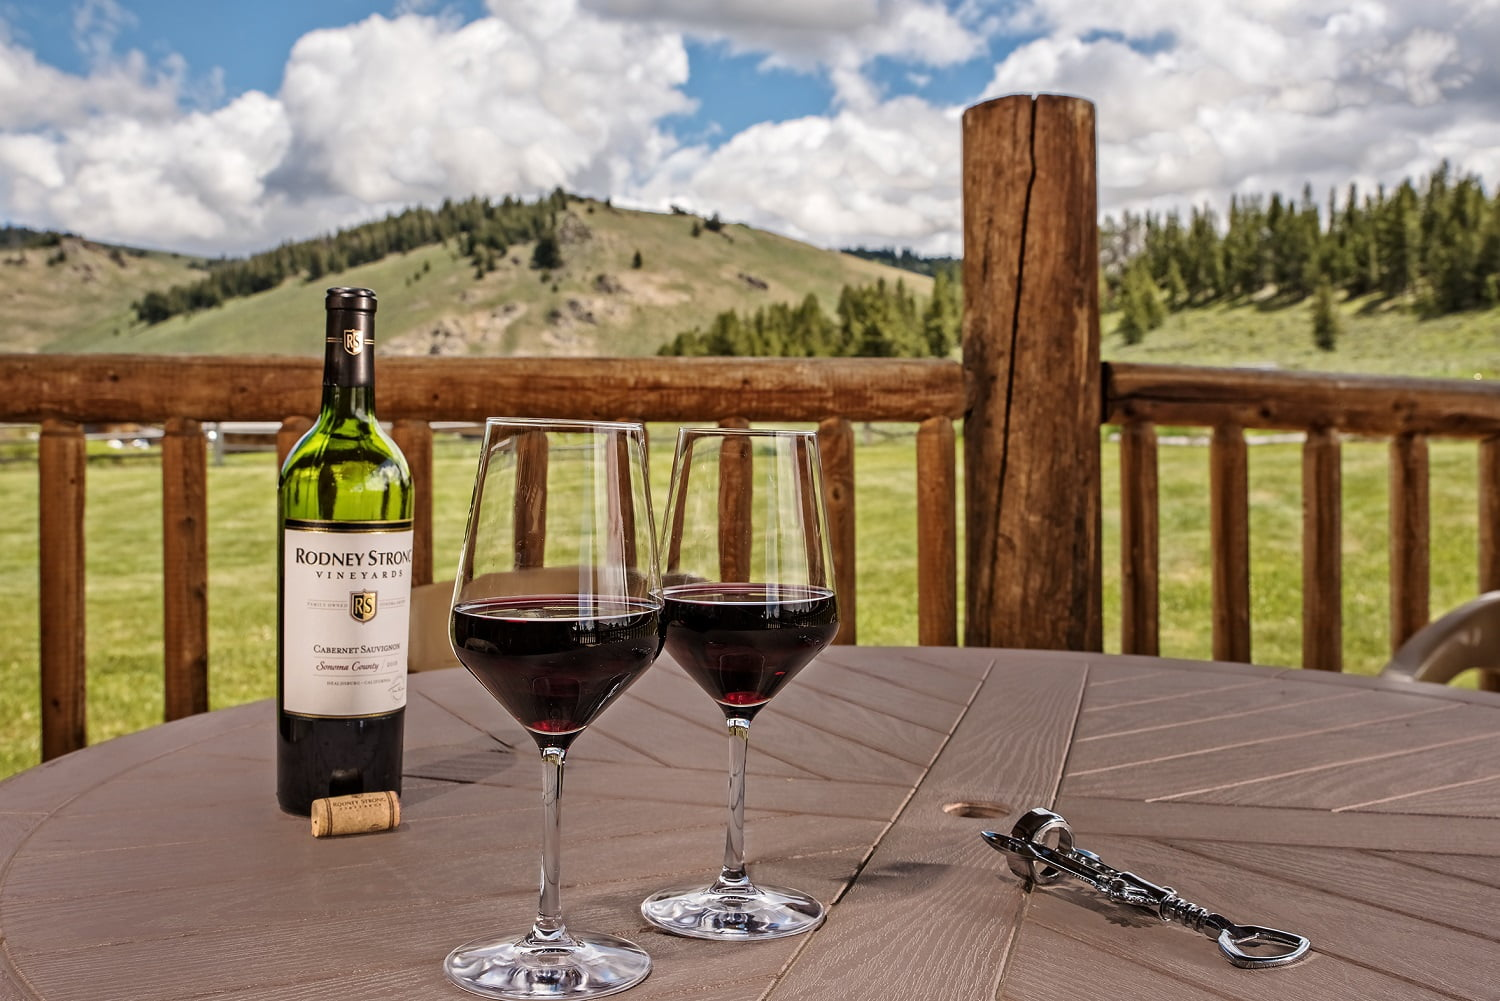 mountain view with wine glasses